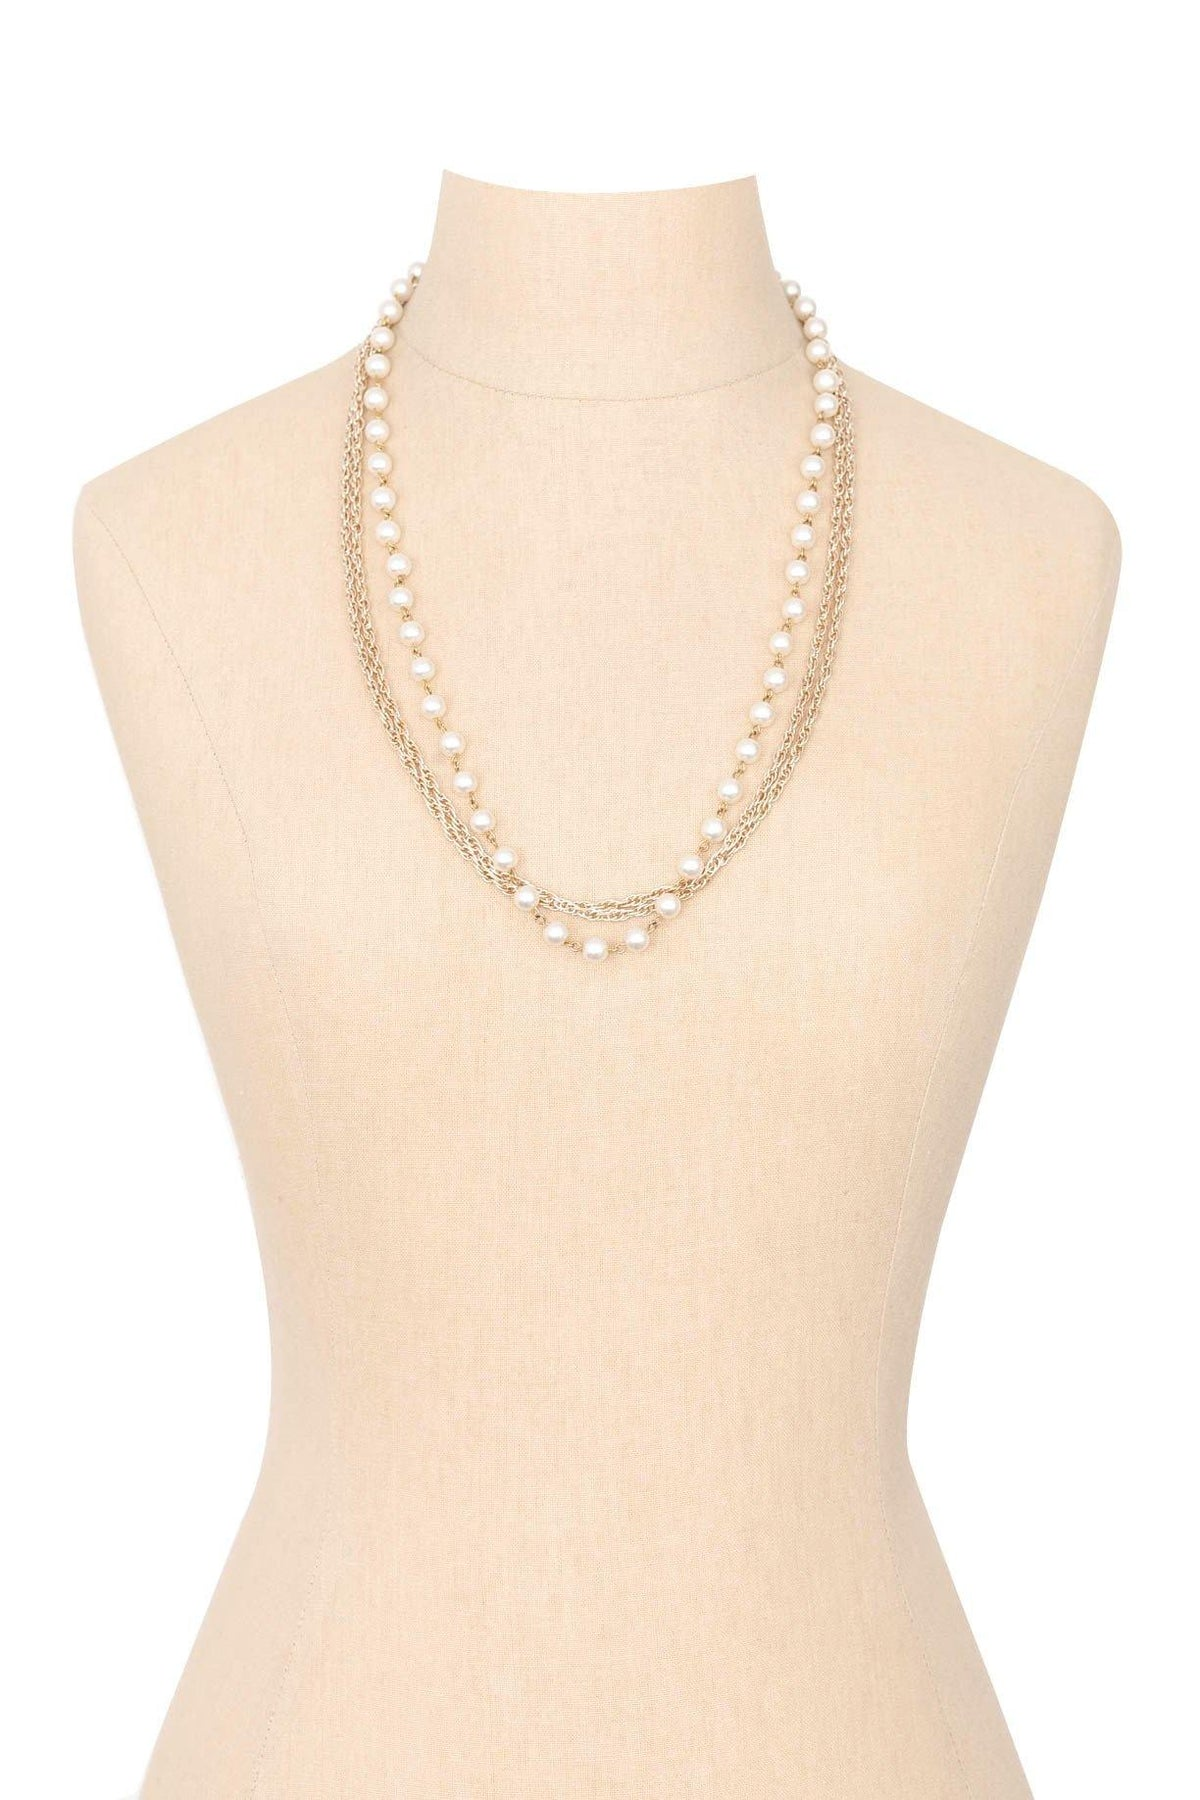 50's Vintage Multi-Chain Pearl Necklace